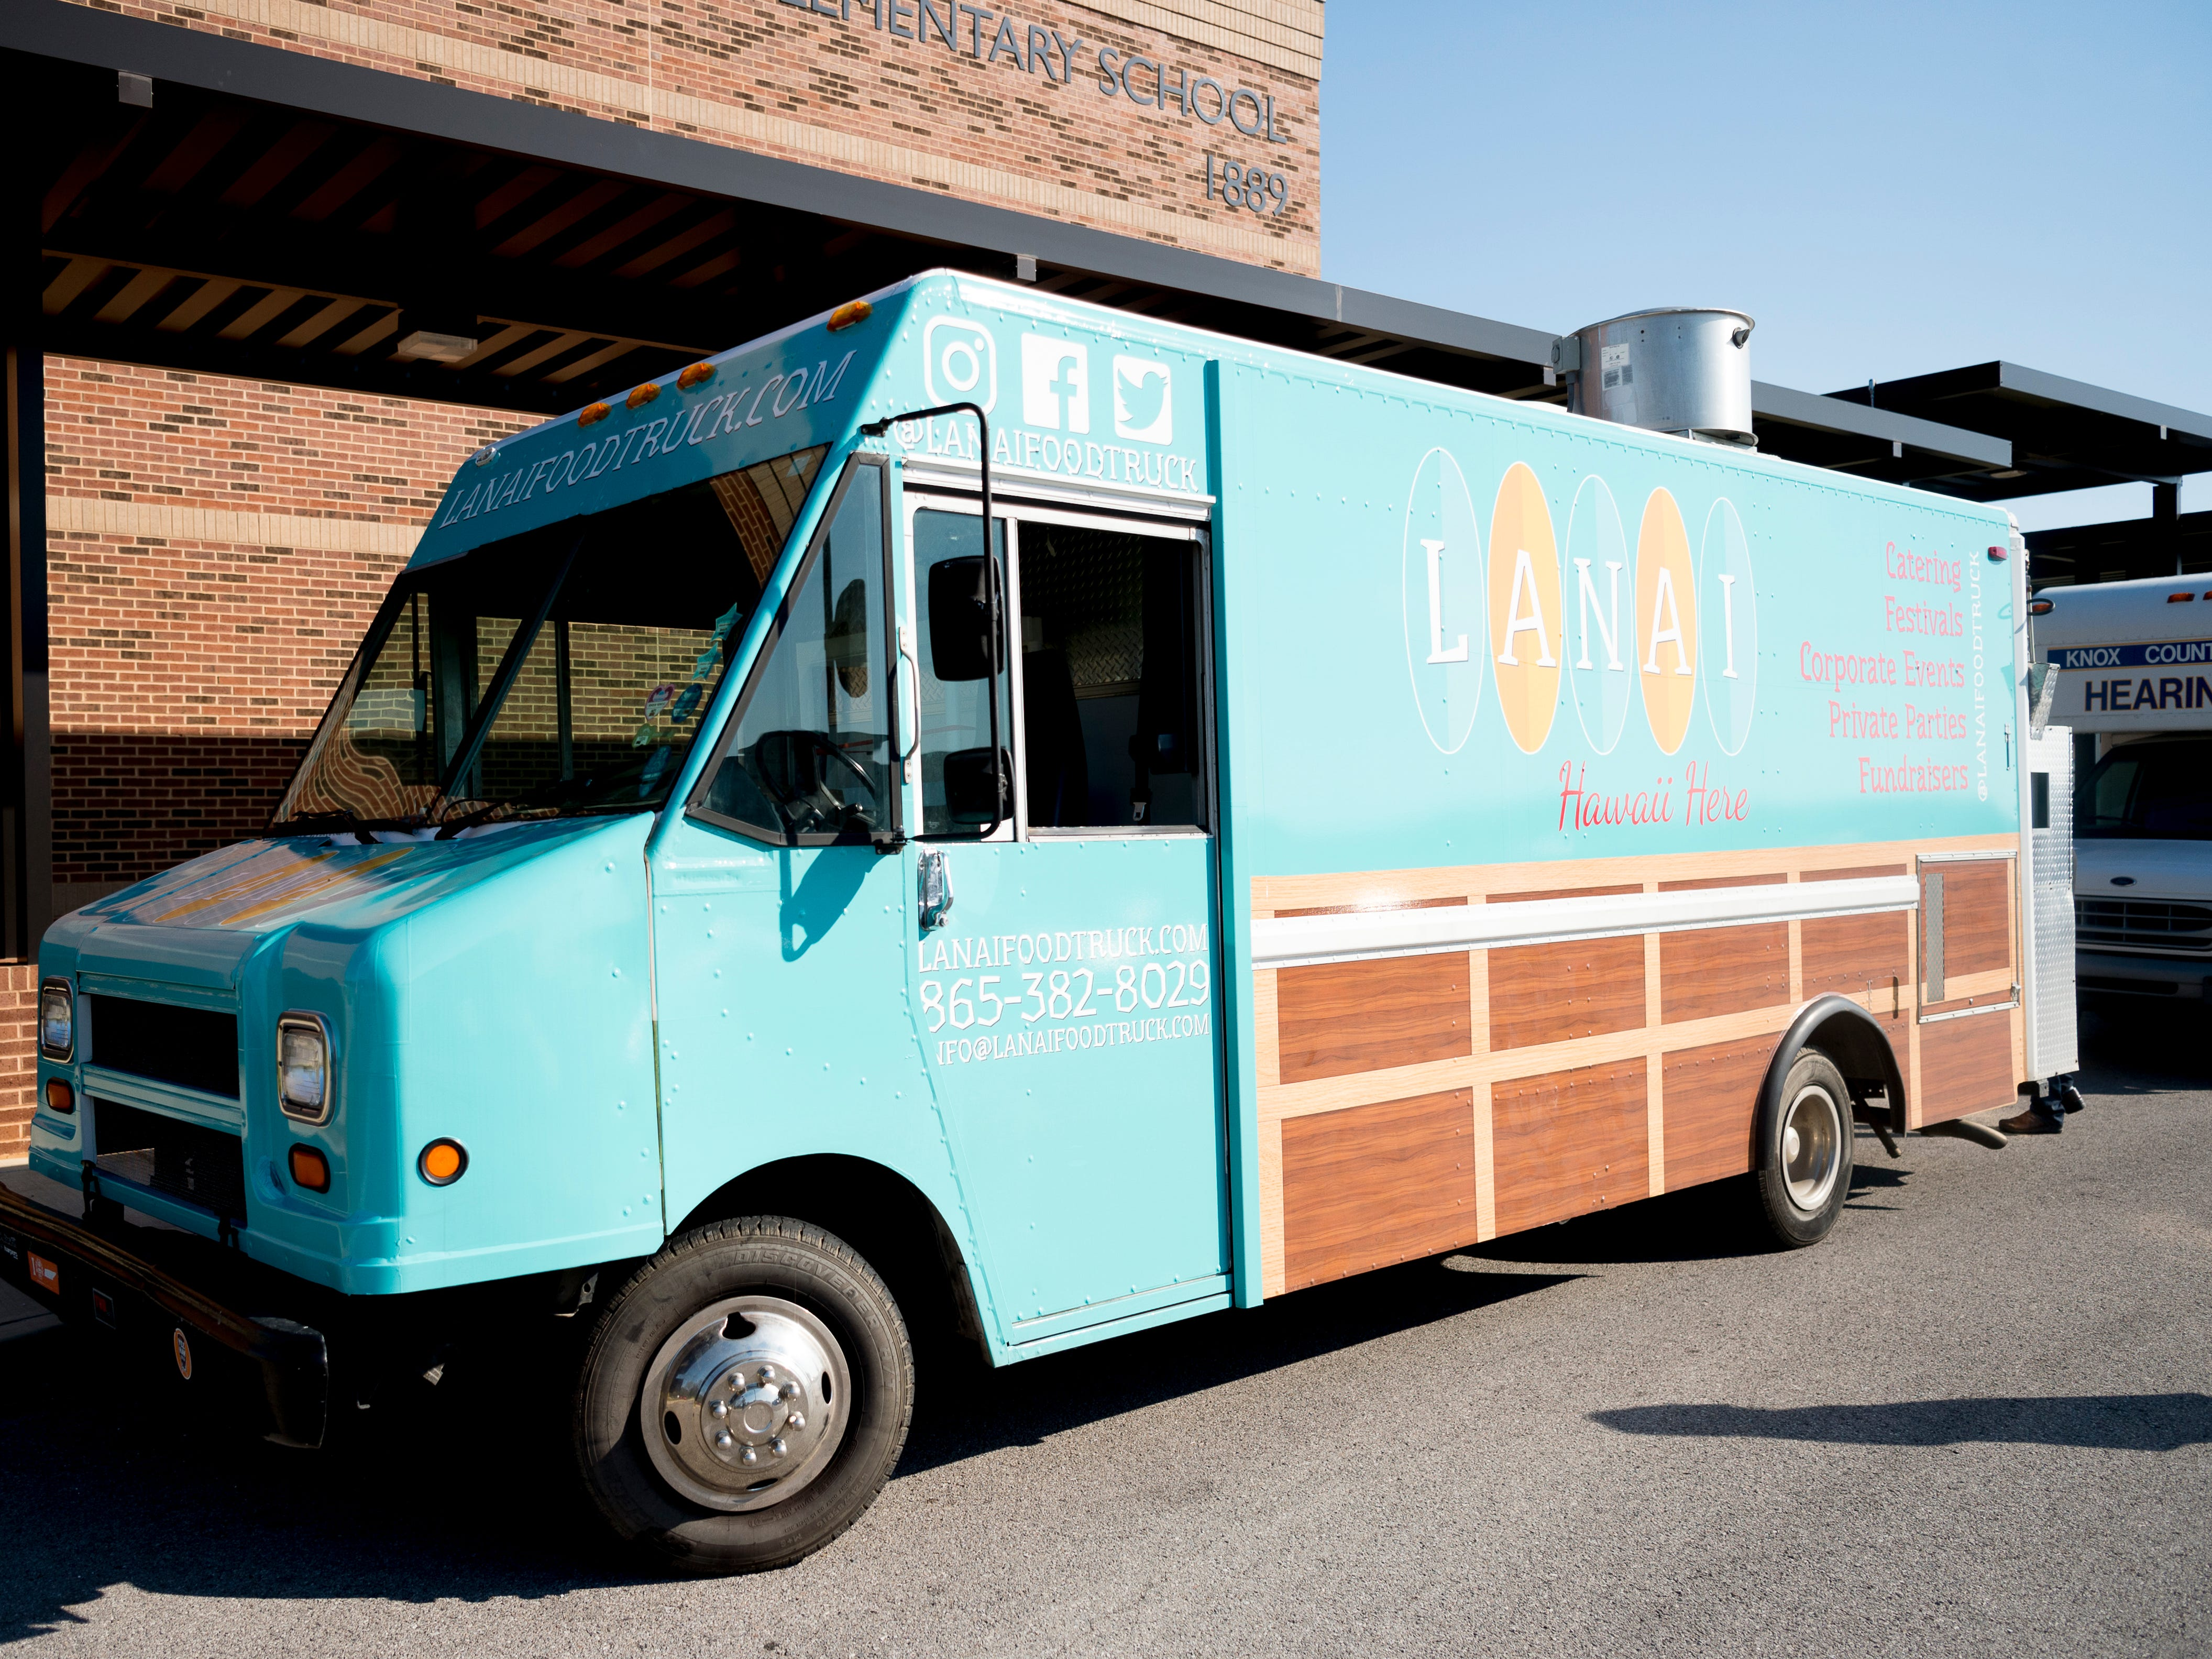 The Lanai Food Truck during a stop at Northshore Elementary School in West Knoxville, Tennessee on Wednesday, April 3, 2019. The food truck offers a fusion of both Hawaiian and Southern flavor.